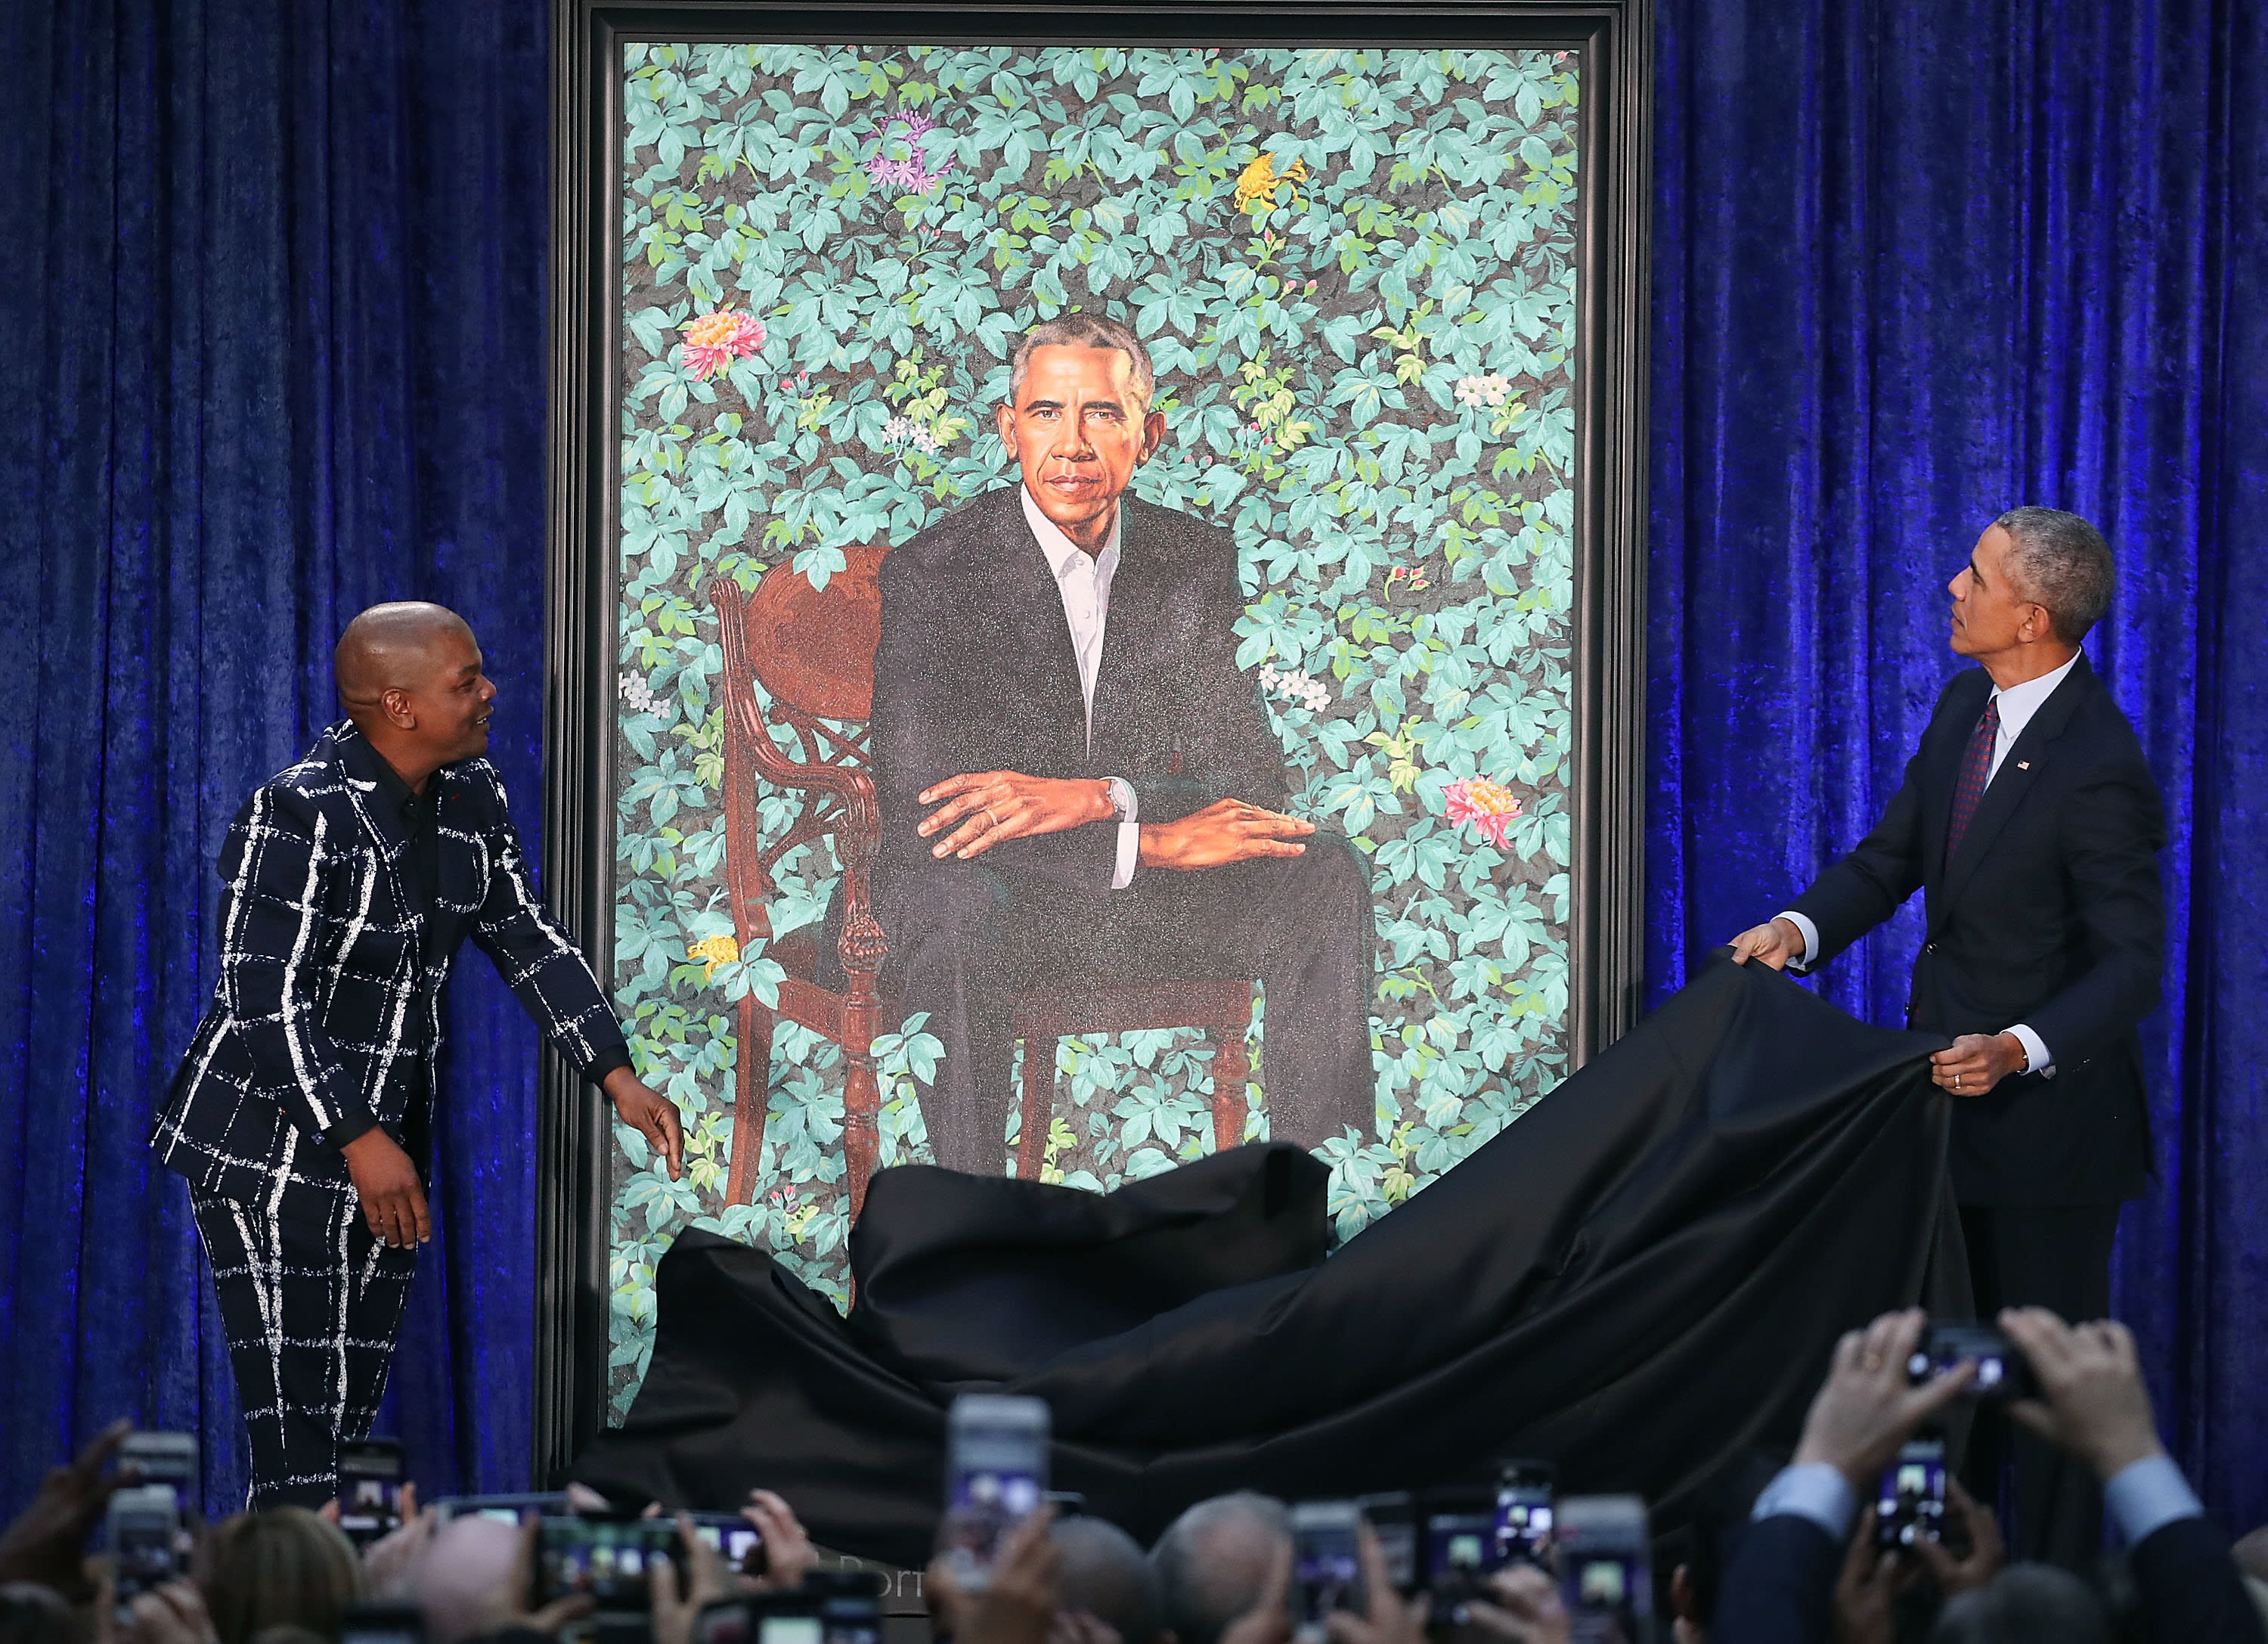 The portrait of former President Barack Obama that will be on display in the gallery. (Mark Wilson/Getty Images)